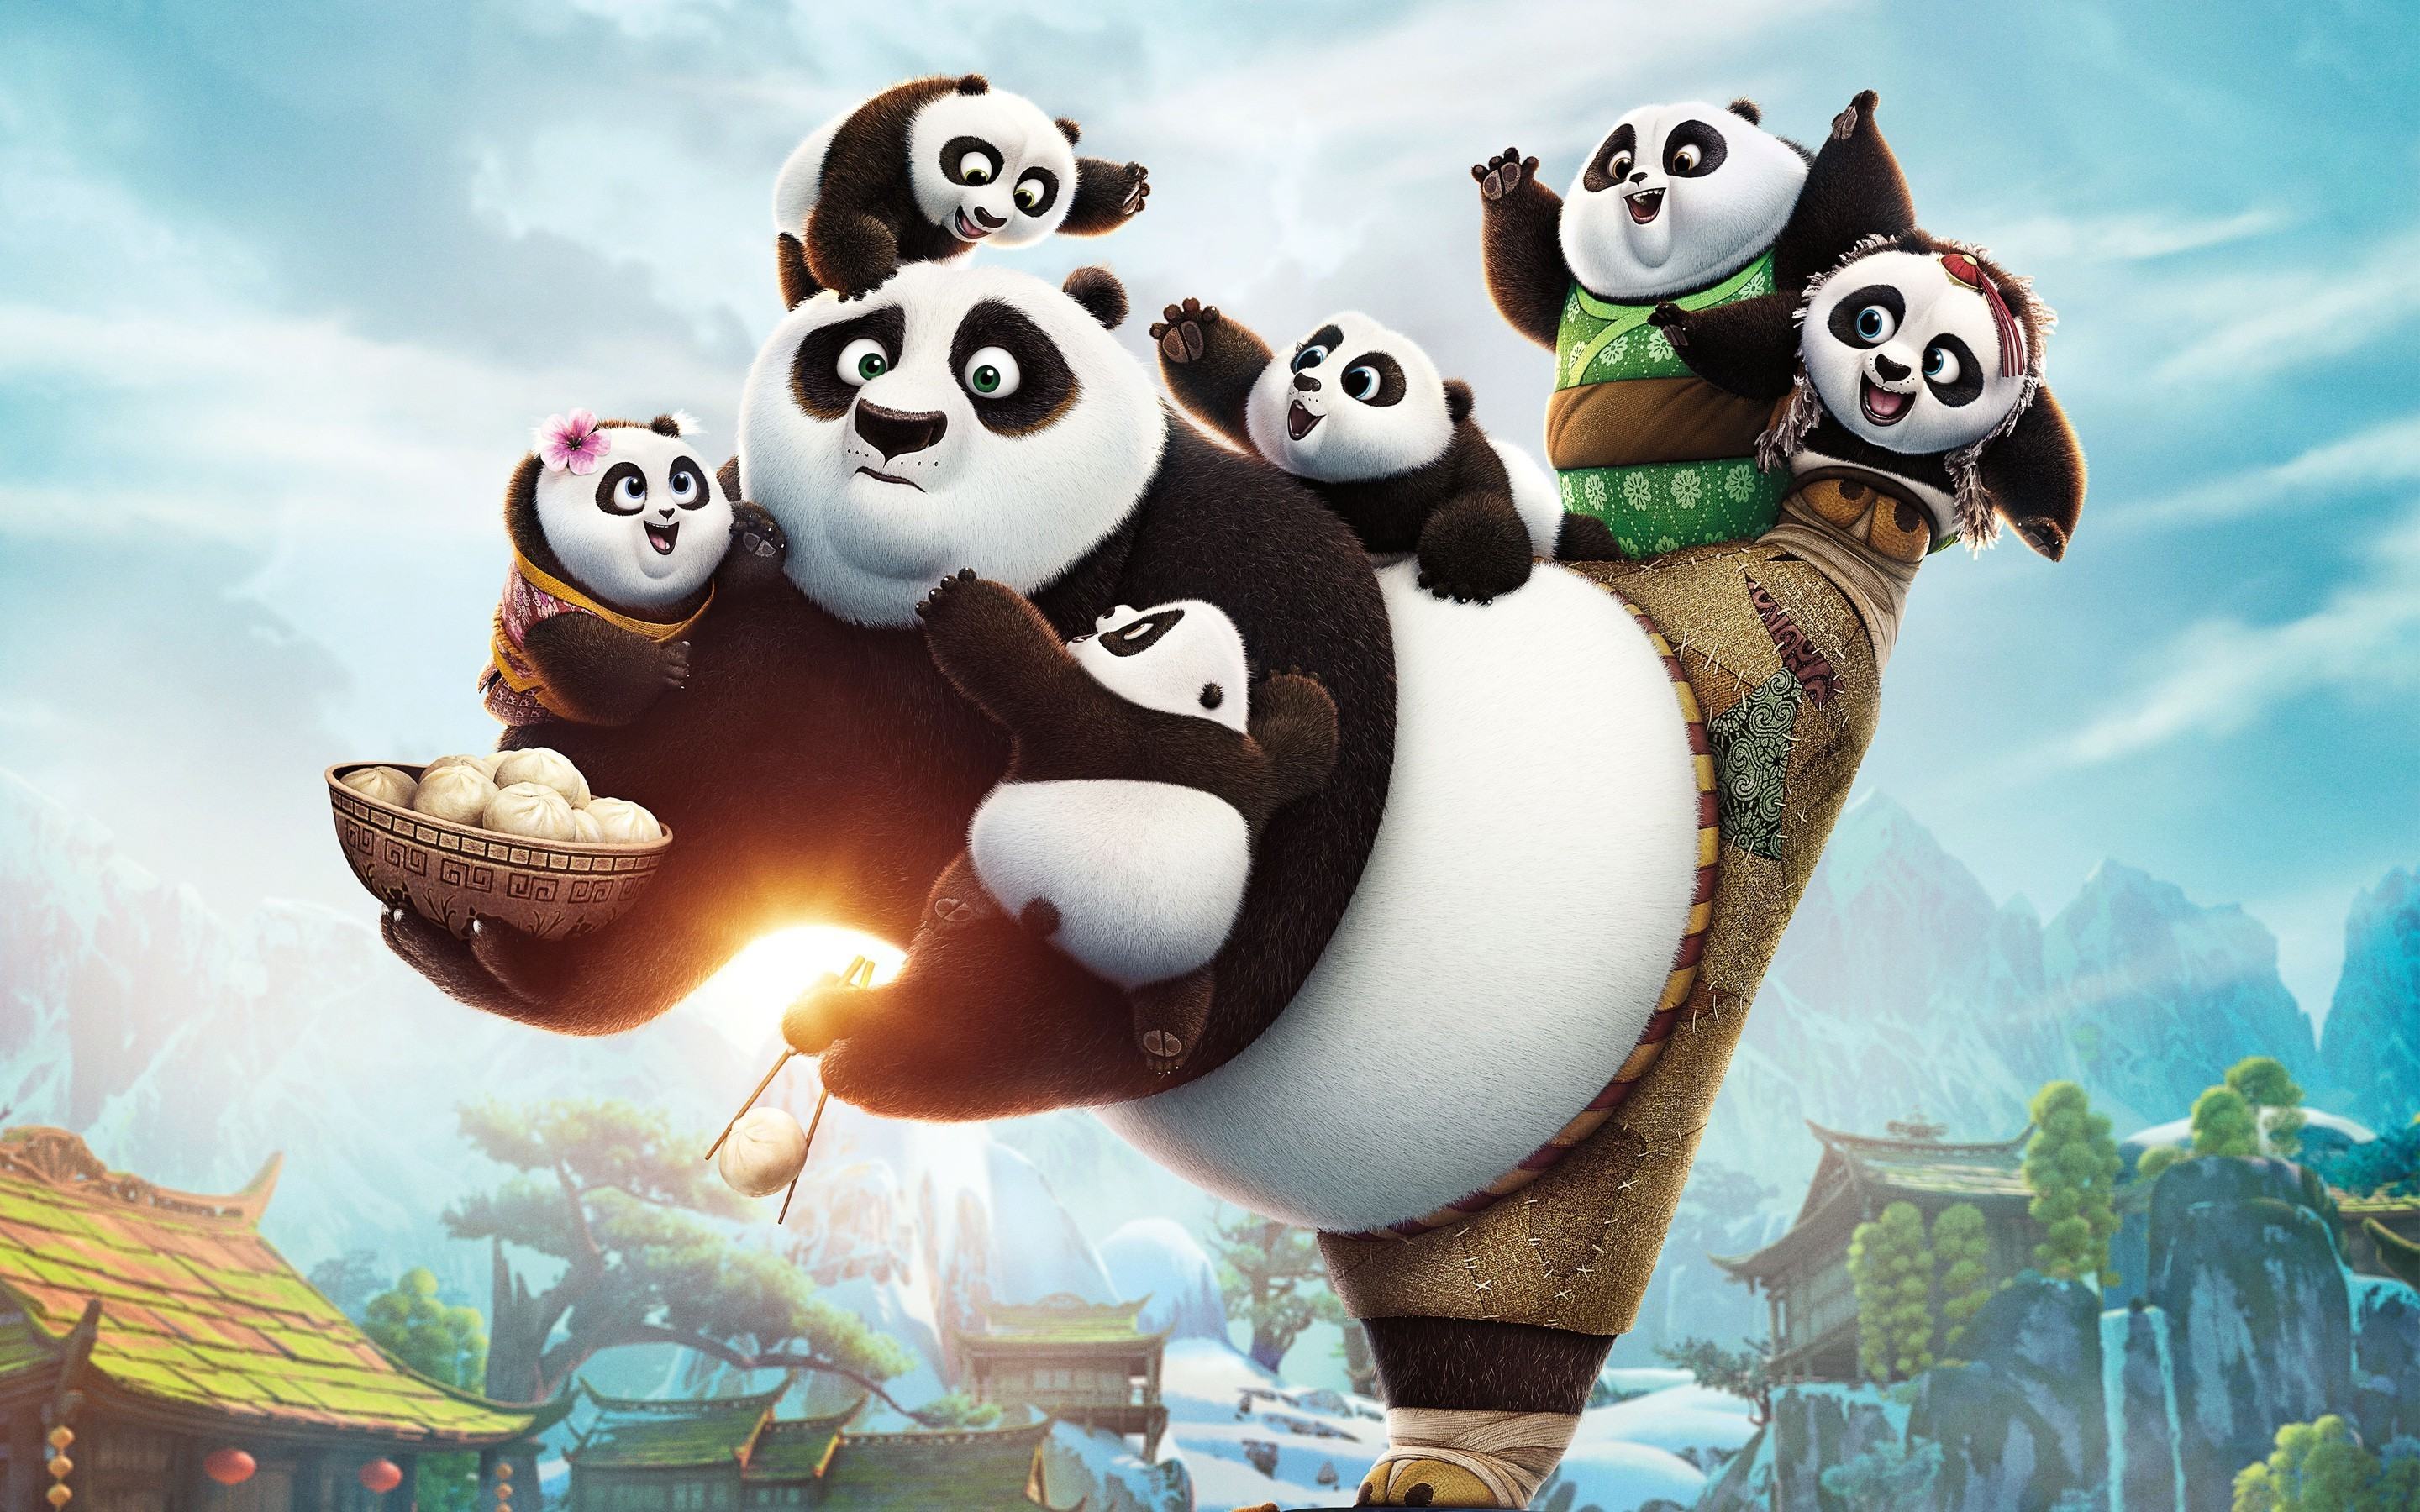 2880x1800 kung Fu Panda 3, Movies, Artwork Wallpapers HD / Desktop and Mobile  Backgrounds